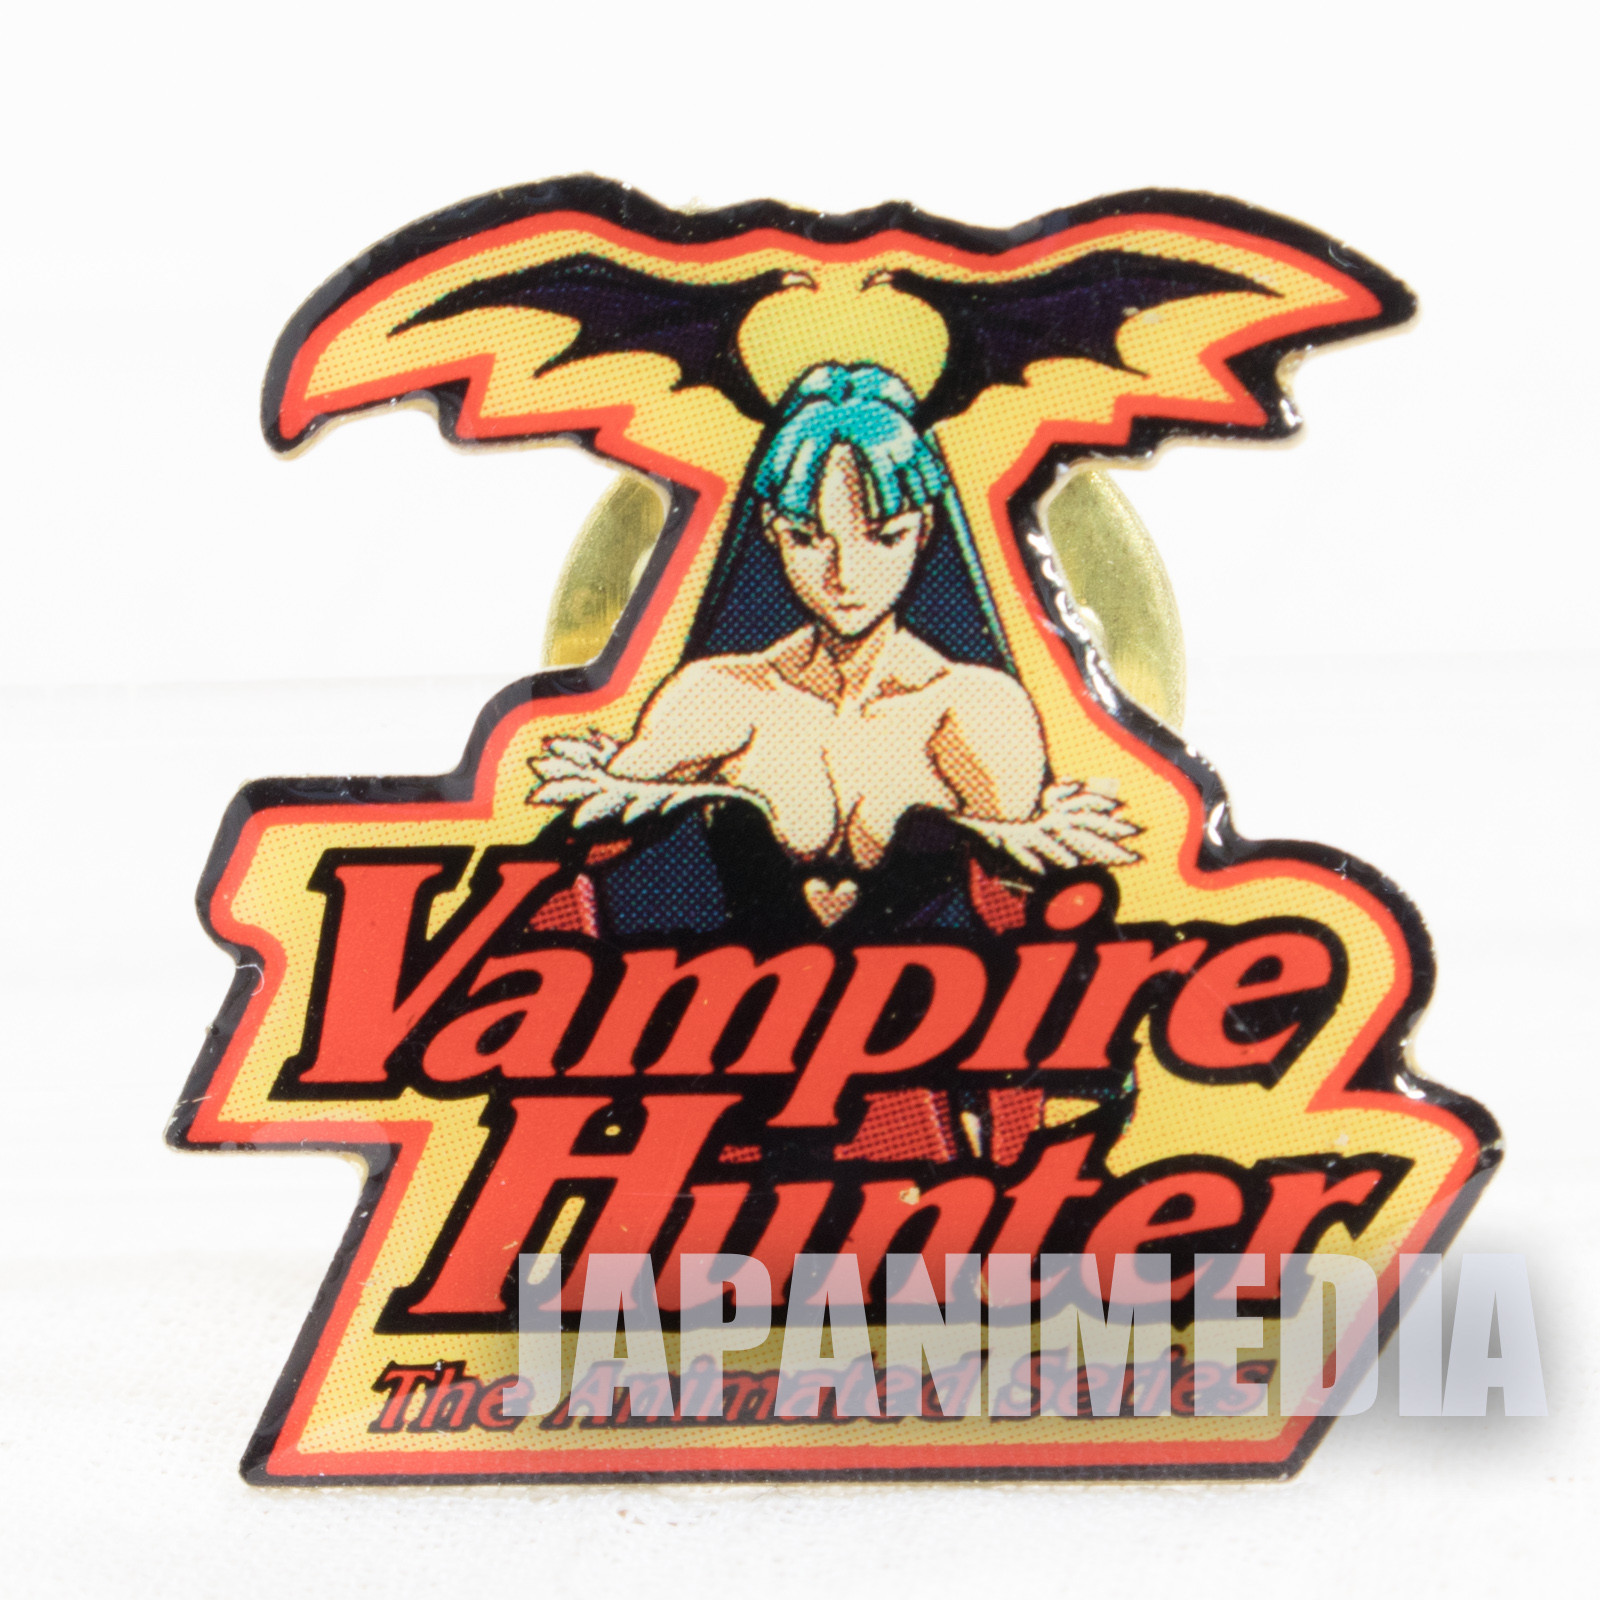 Darkstalkers (Vampire) Morrigan Metal Pins Capcom Character JAPAN HUNTER SAVIOR